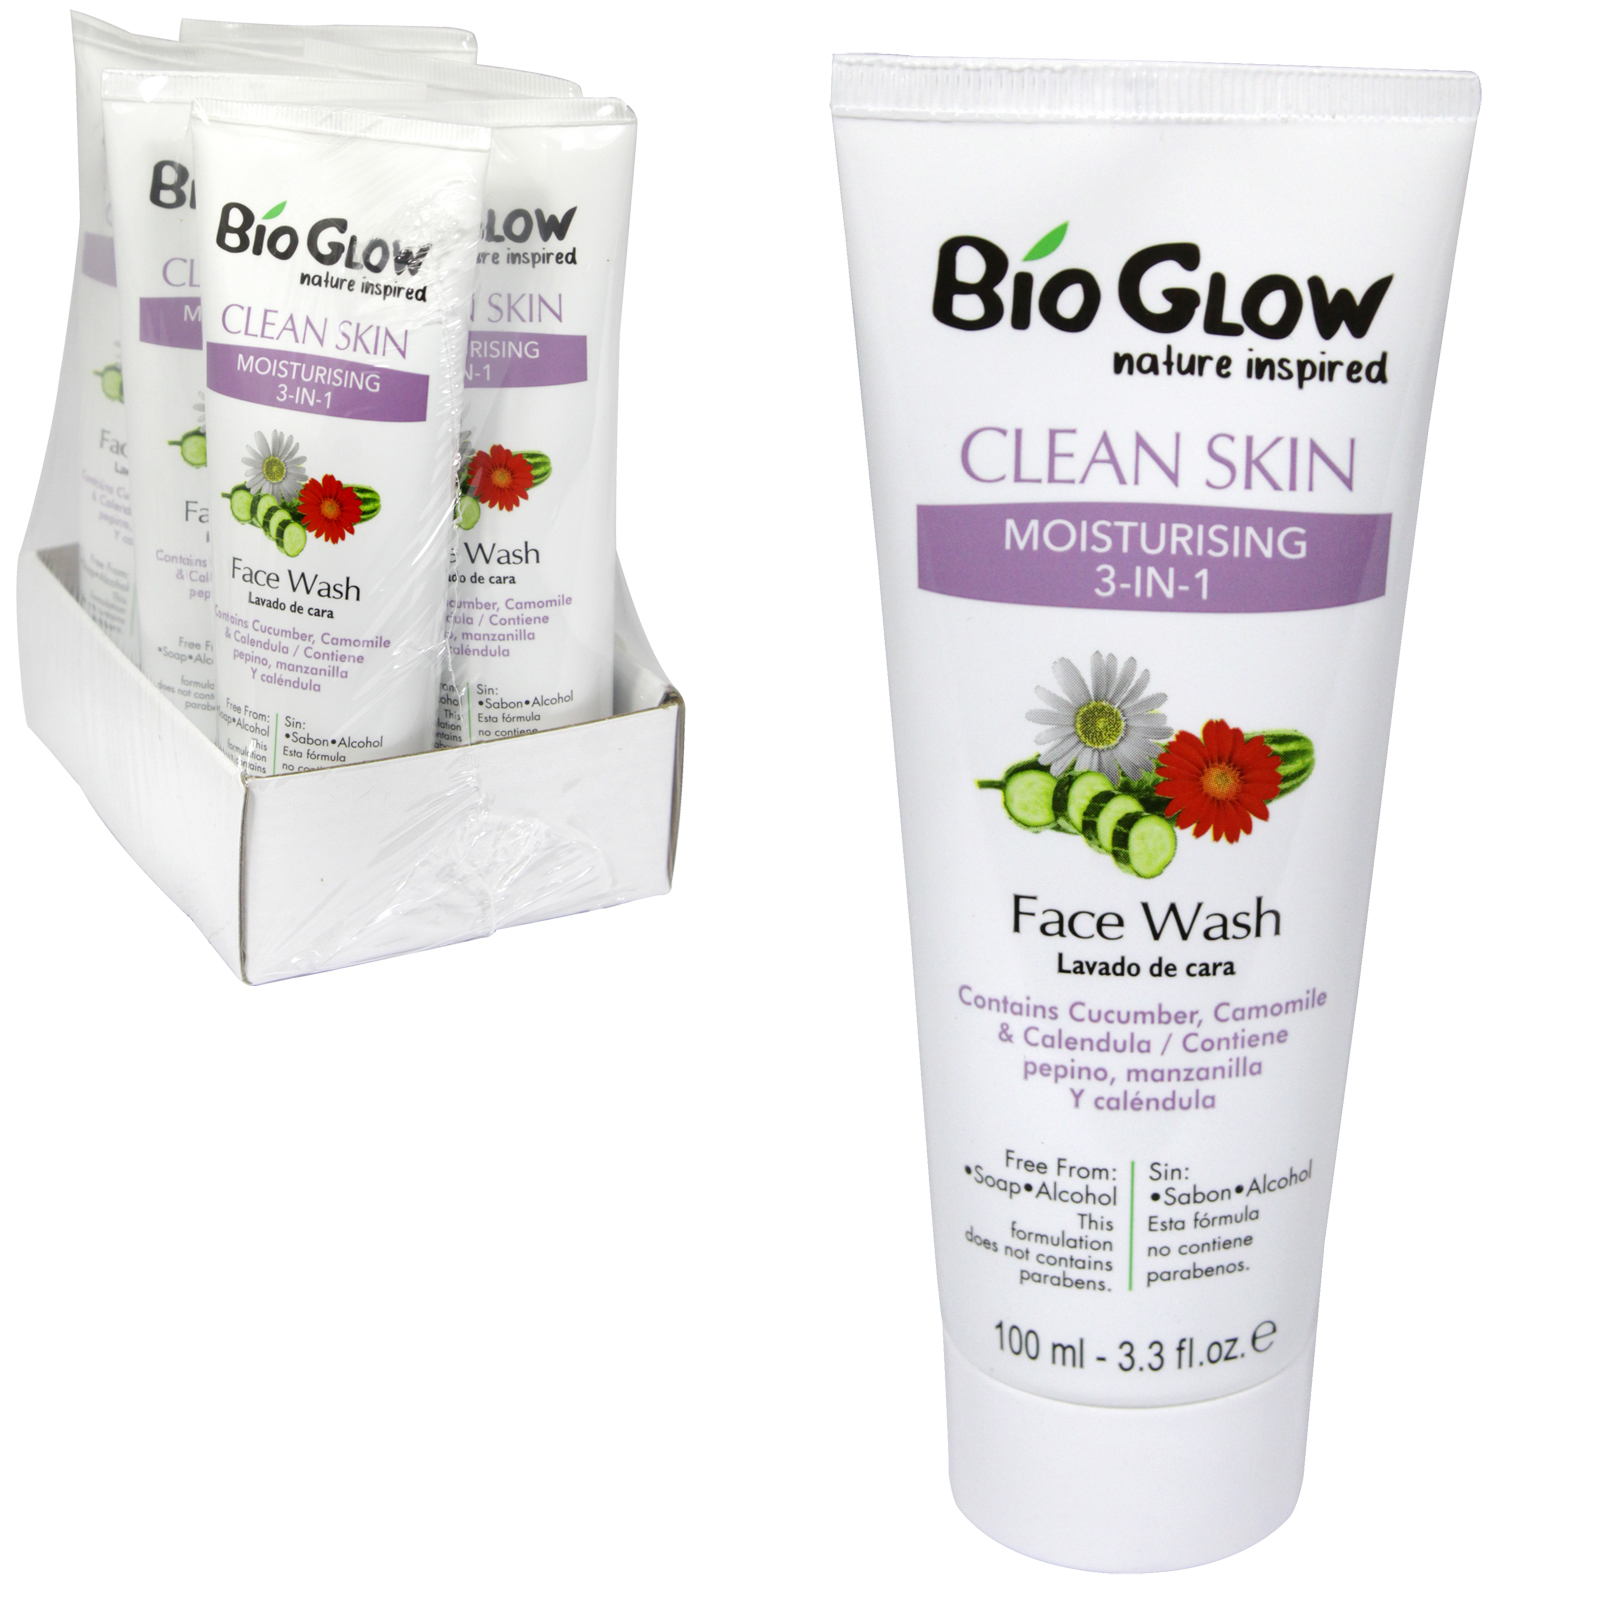 BIOGLOW CRUELTY FREE+VEGAN FRIENDLY FACE WASH 100ML MOISTURISING 3IN1 X6